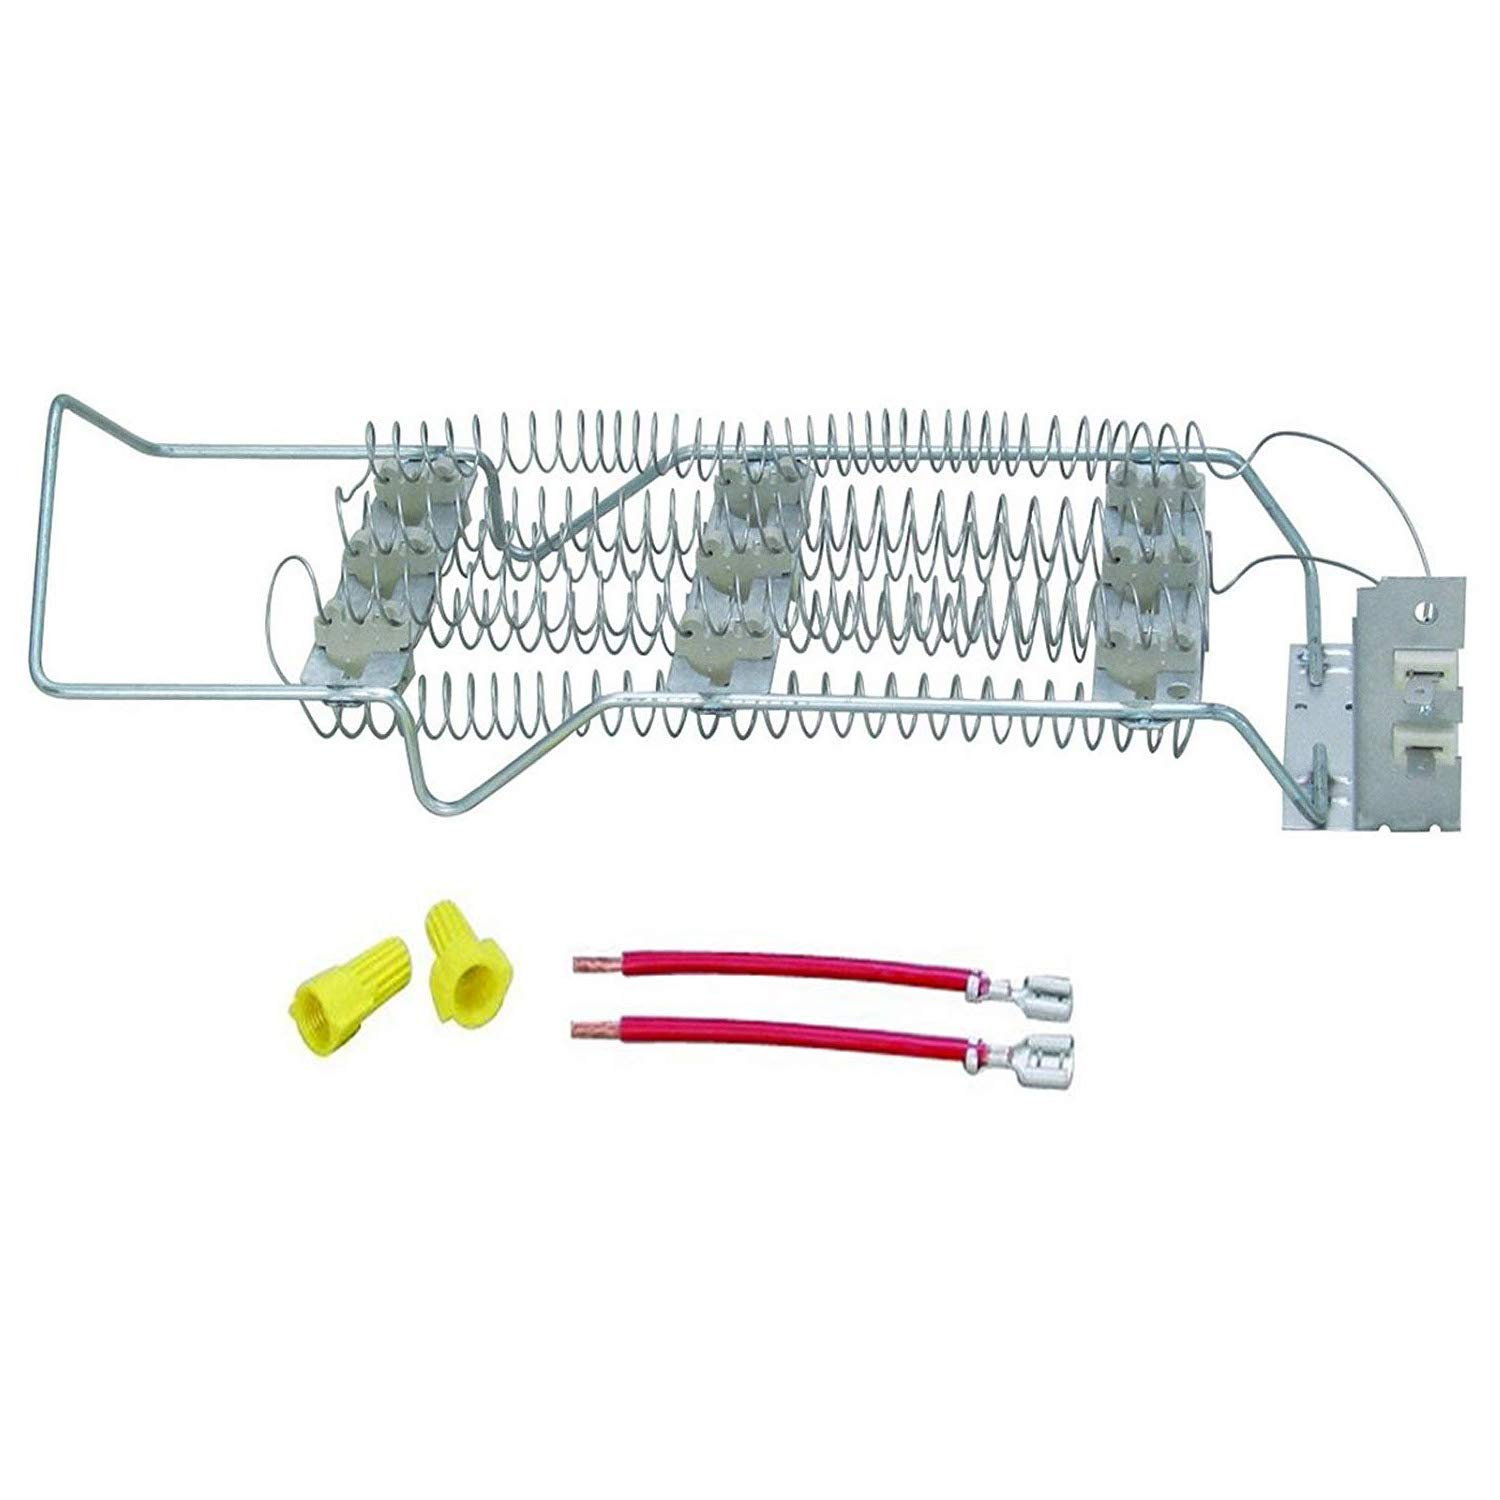 Siwdoy 4391960 Dryer Heating Element Kit Compatible with Whirlpool Dryer WP4391960 AP3109438 PS373014